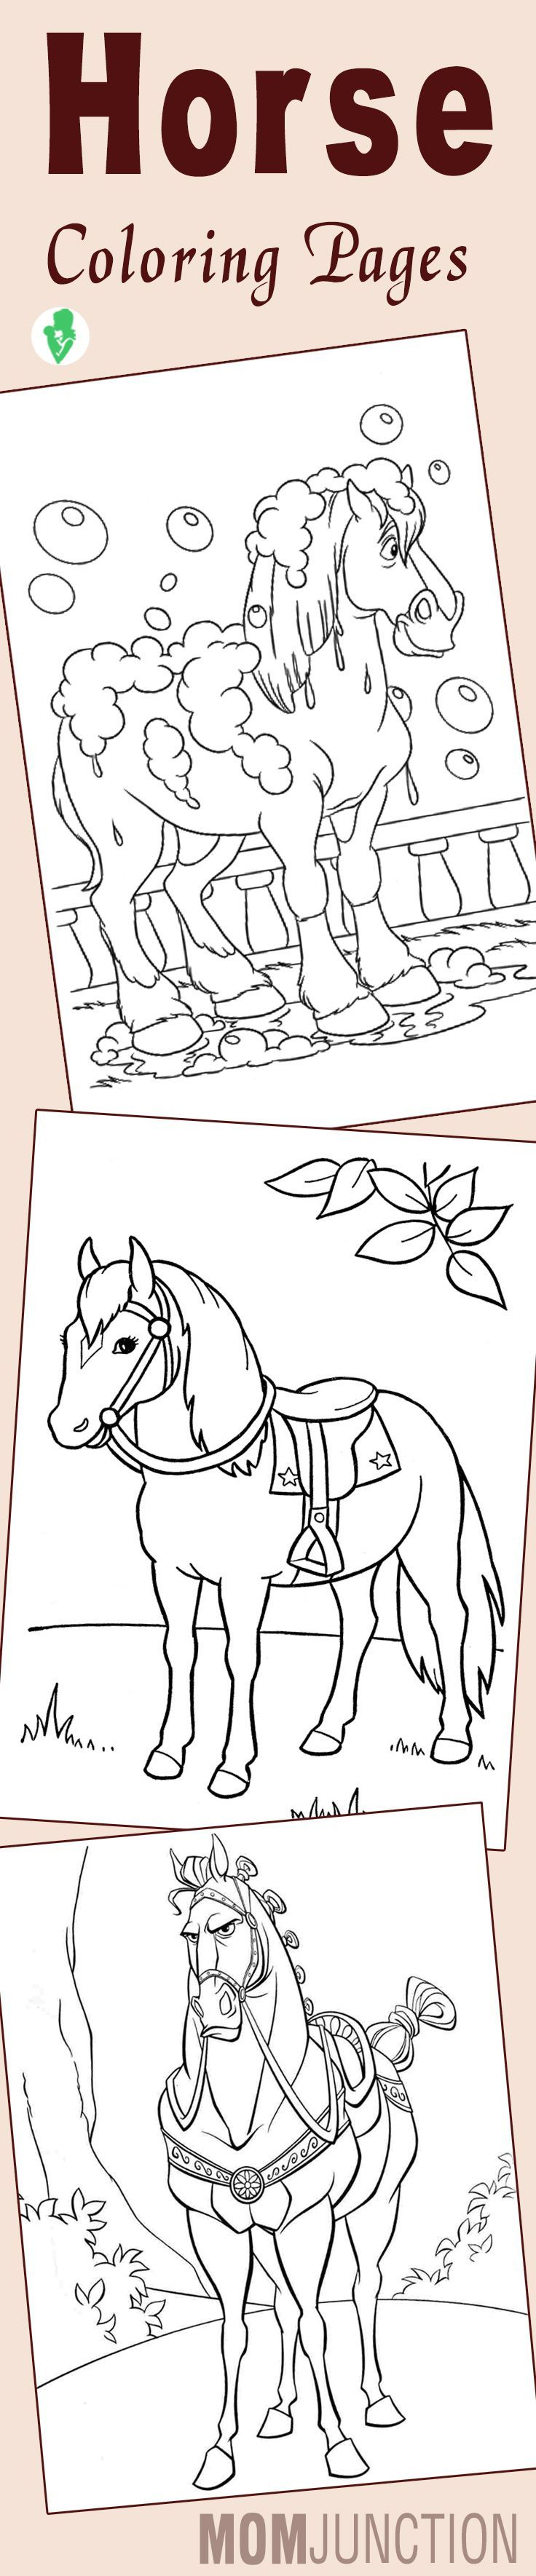 Coloring page one horse open sleigh - 25 Best Horse Coloring Pages Your Toddler Will Love To Color